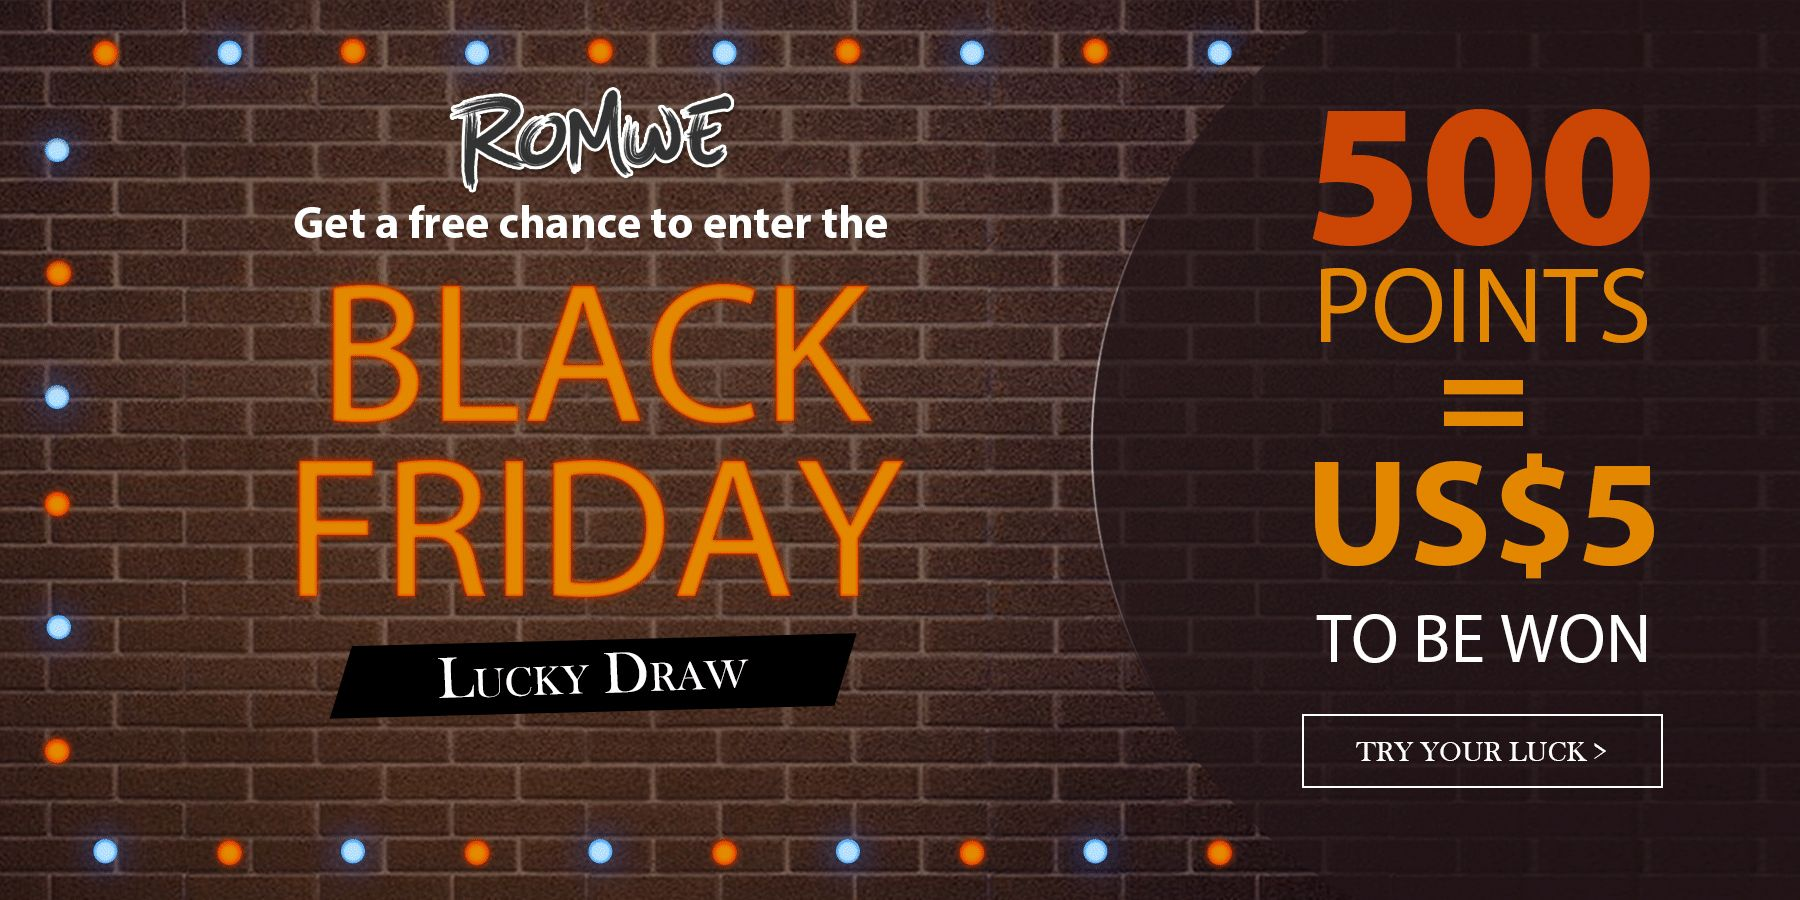 Romwe Black Friday Lucky Draw 500 Points = US $5 To Be Won #game ...